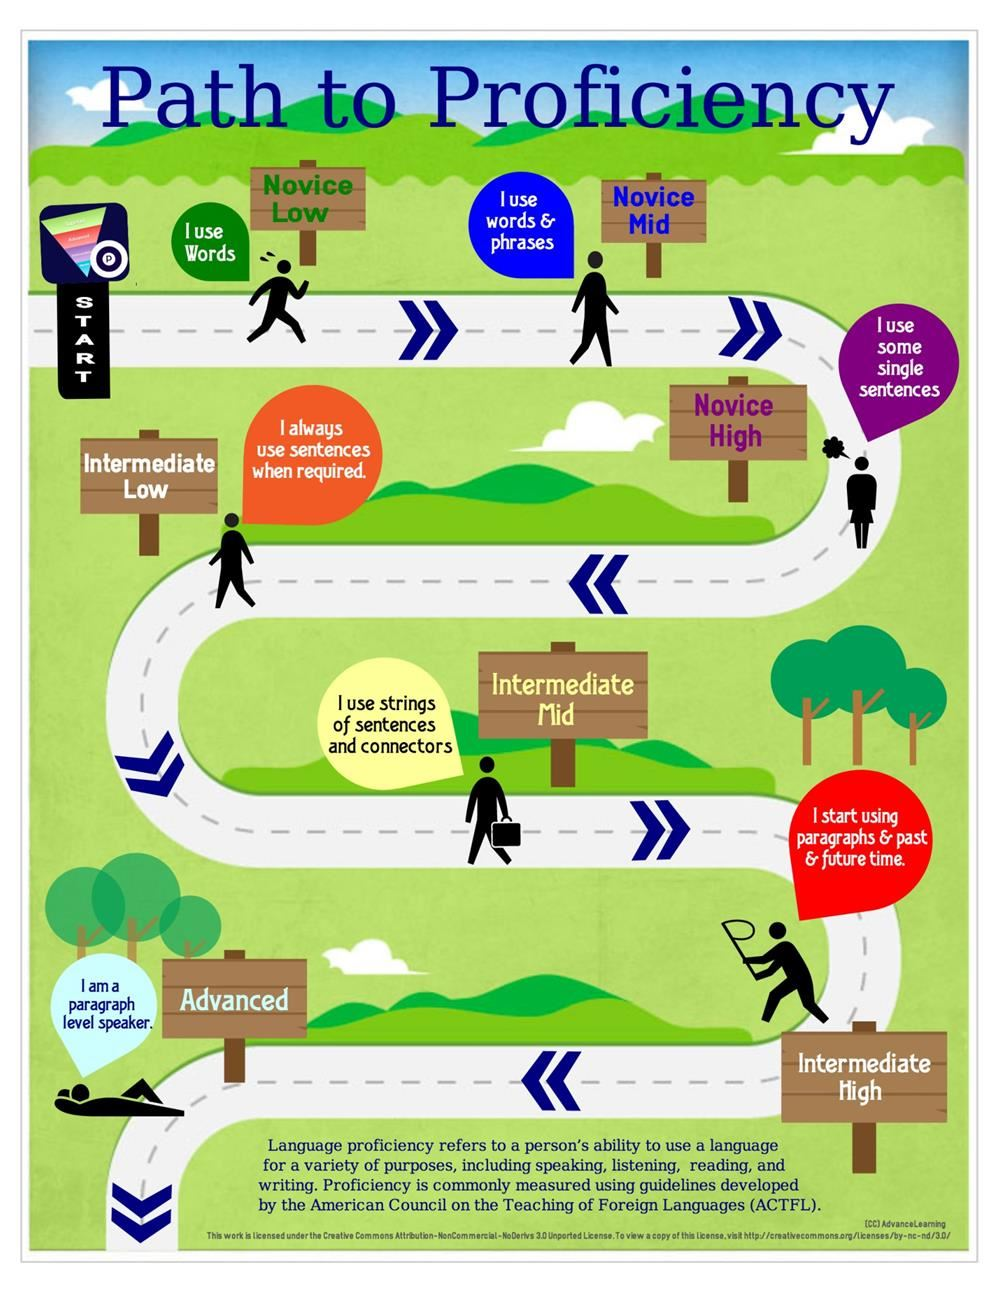 Pathway to proficiency graphic